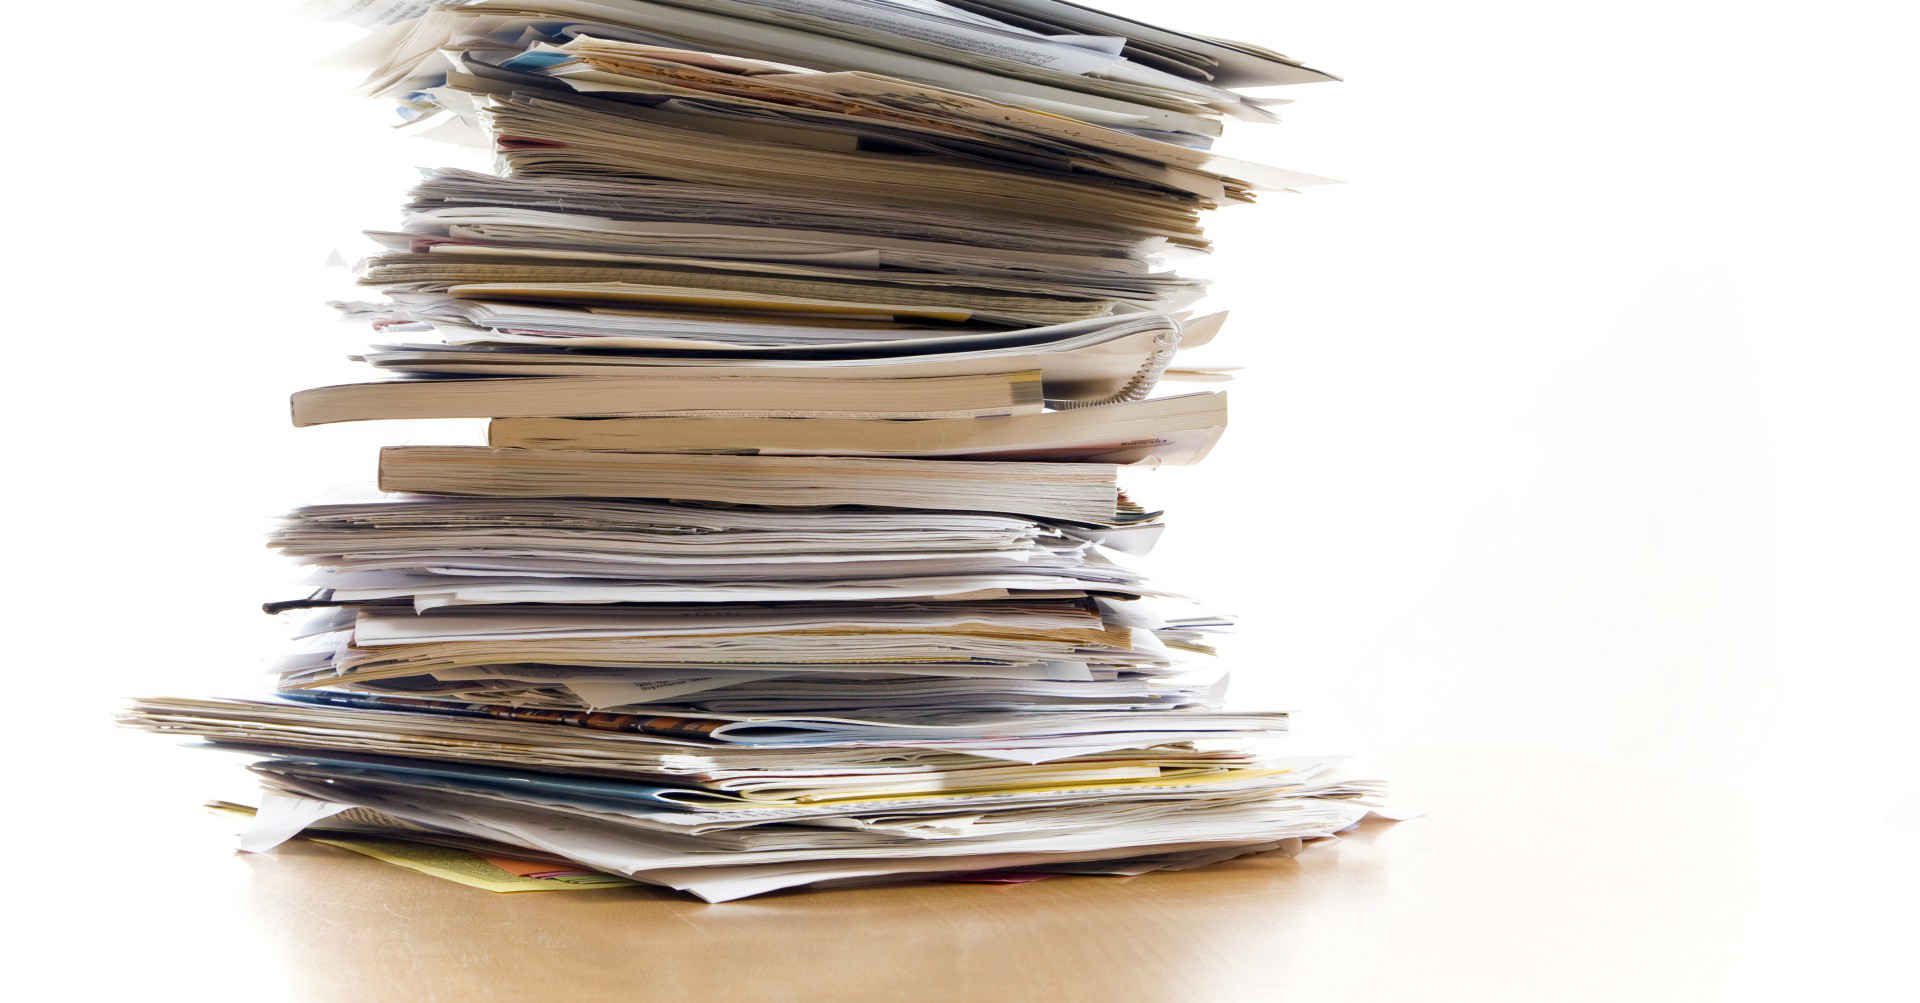 How to organise personal documents